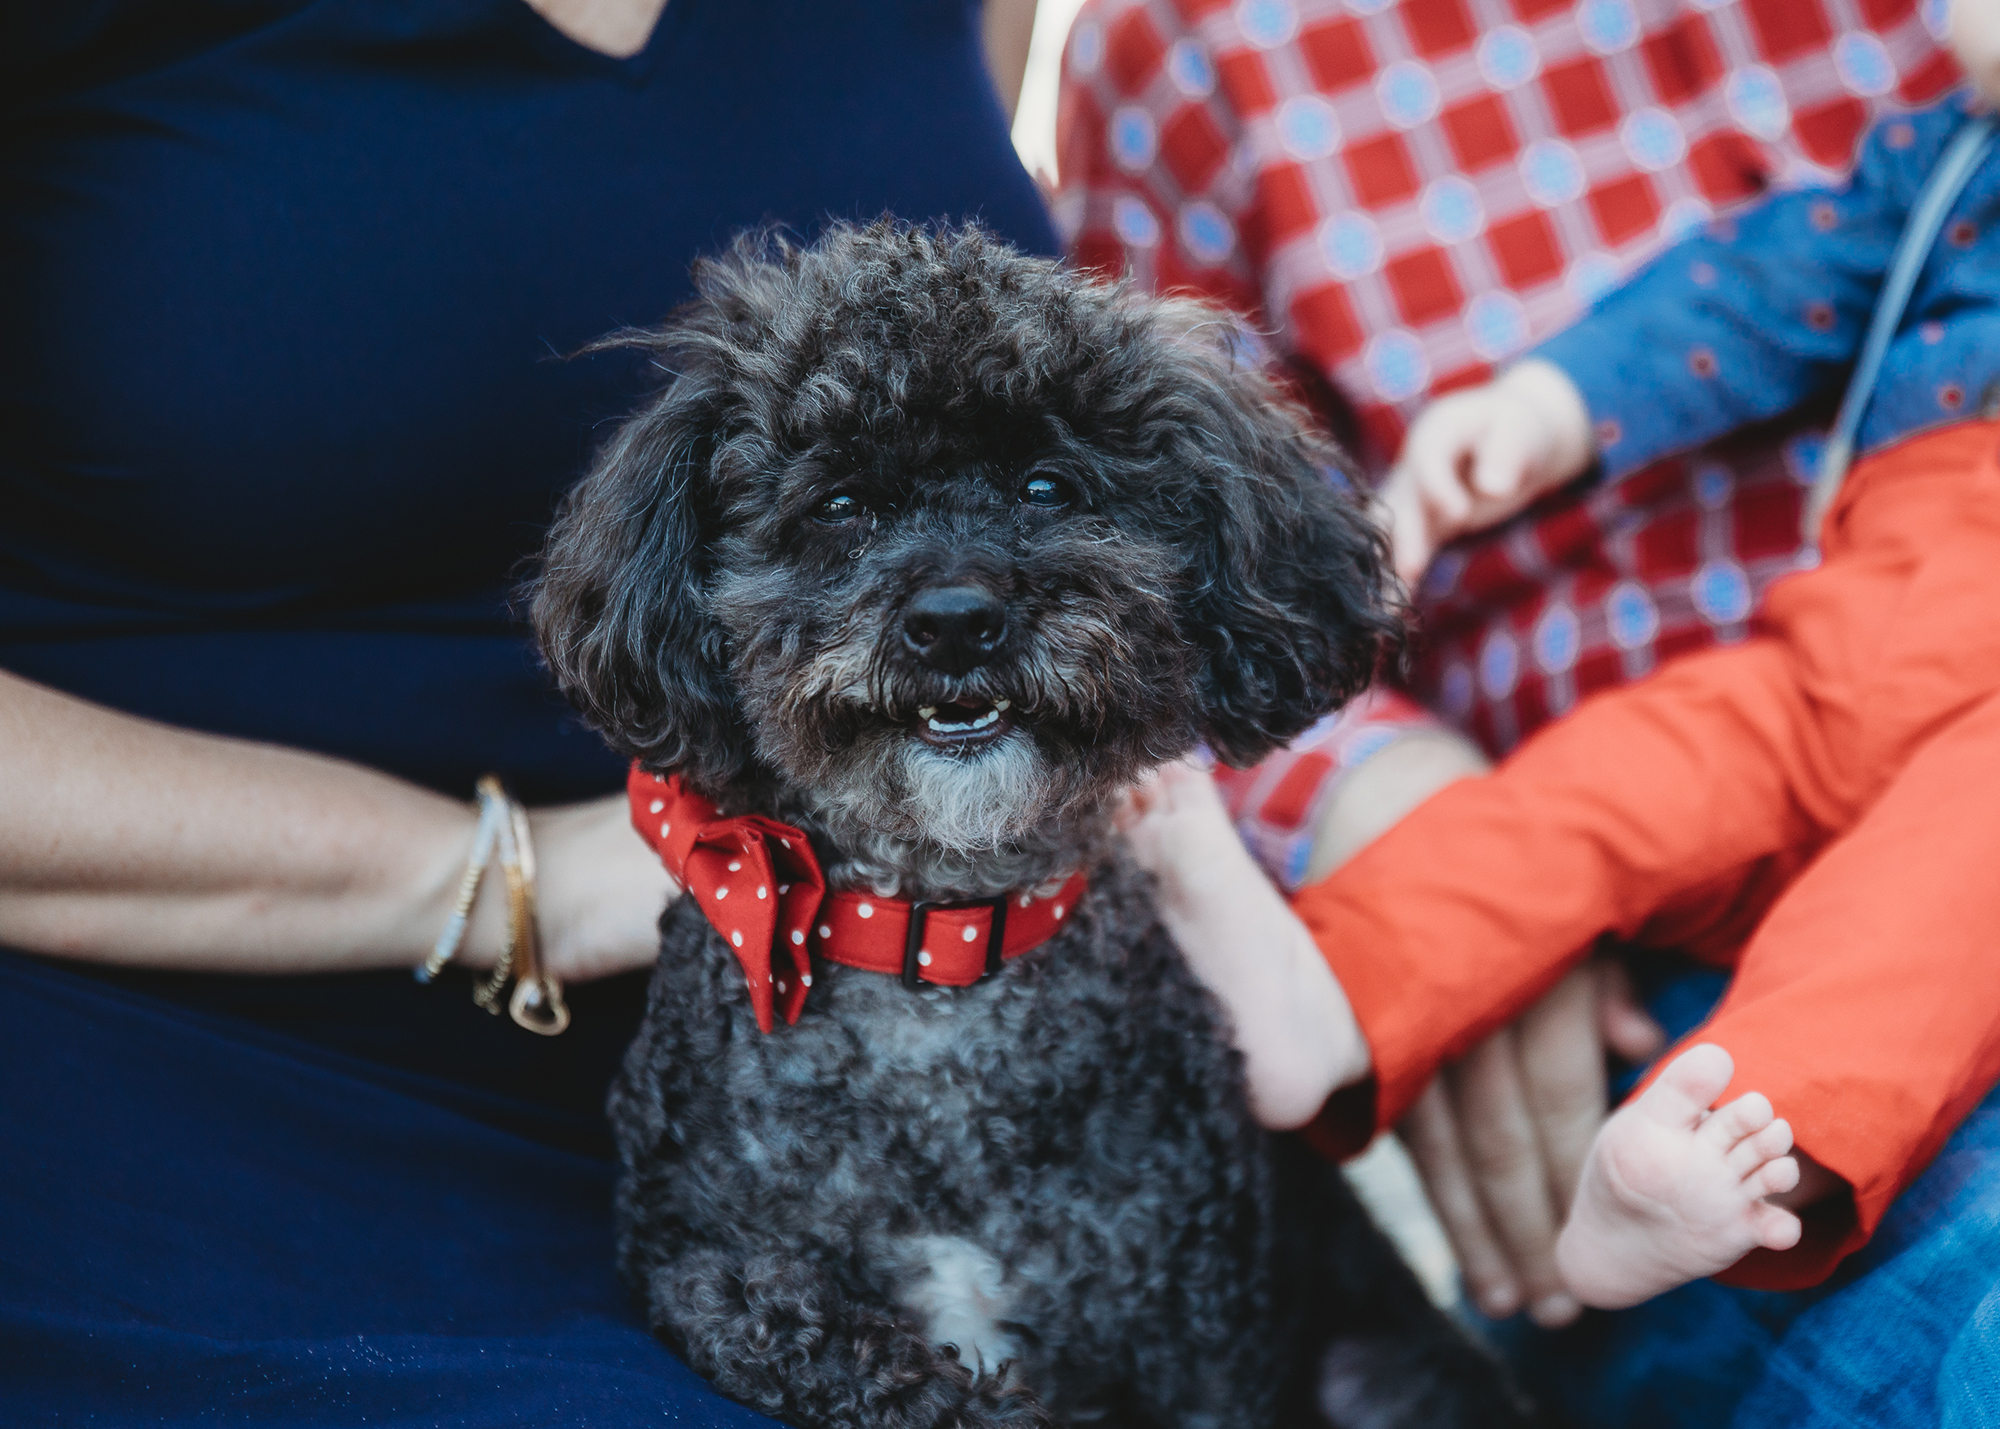 Our friends' dog, Oliver, who remembered us after several years apart! Boston family photographer travel blog post.